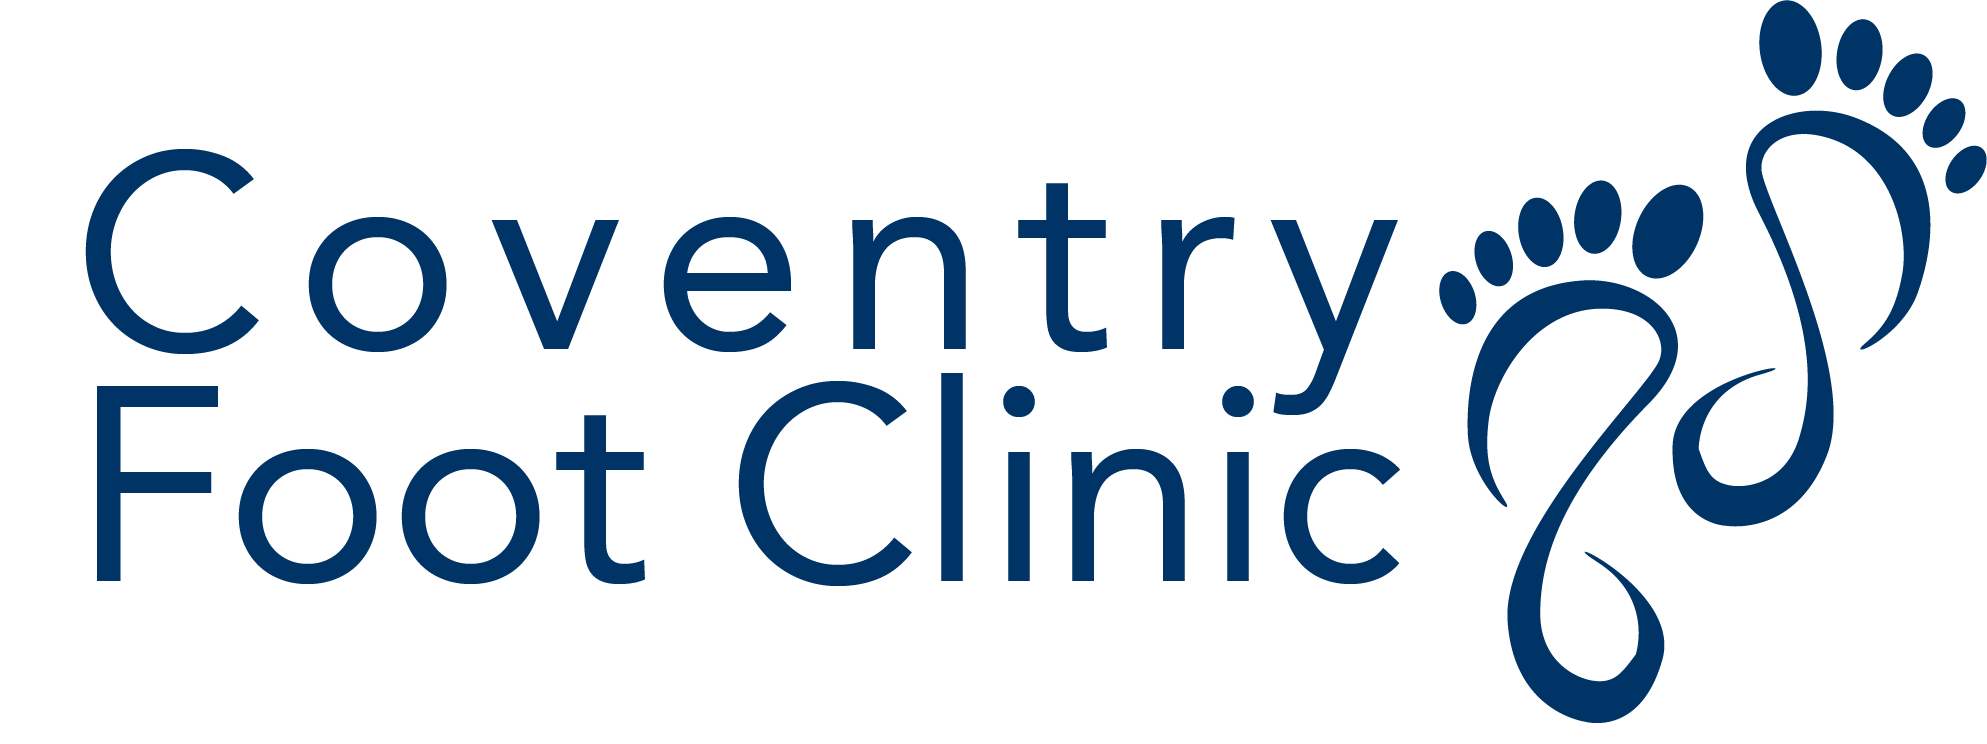 Coventry Foot Clinic